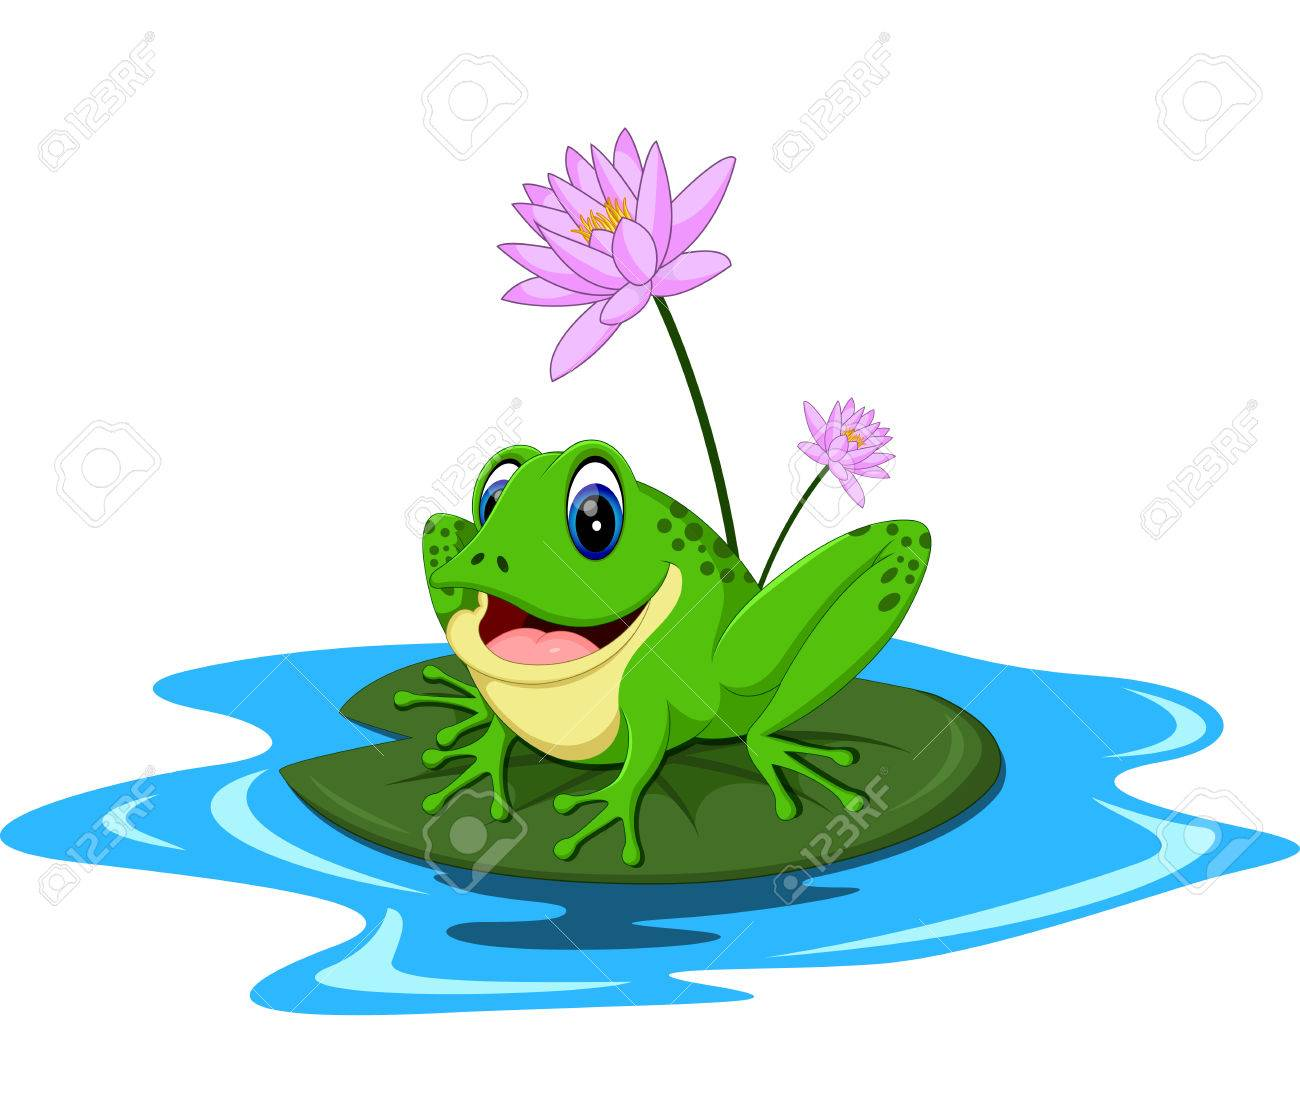 406 Lily Pad Stock Vector Illustration And Royalty Free Lily Pad Clipart.